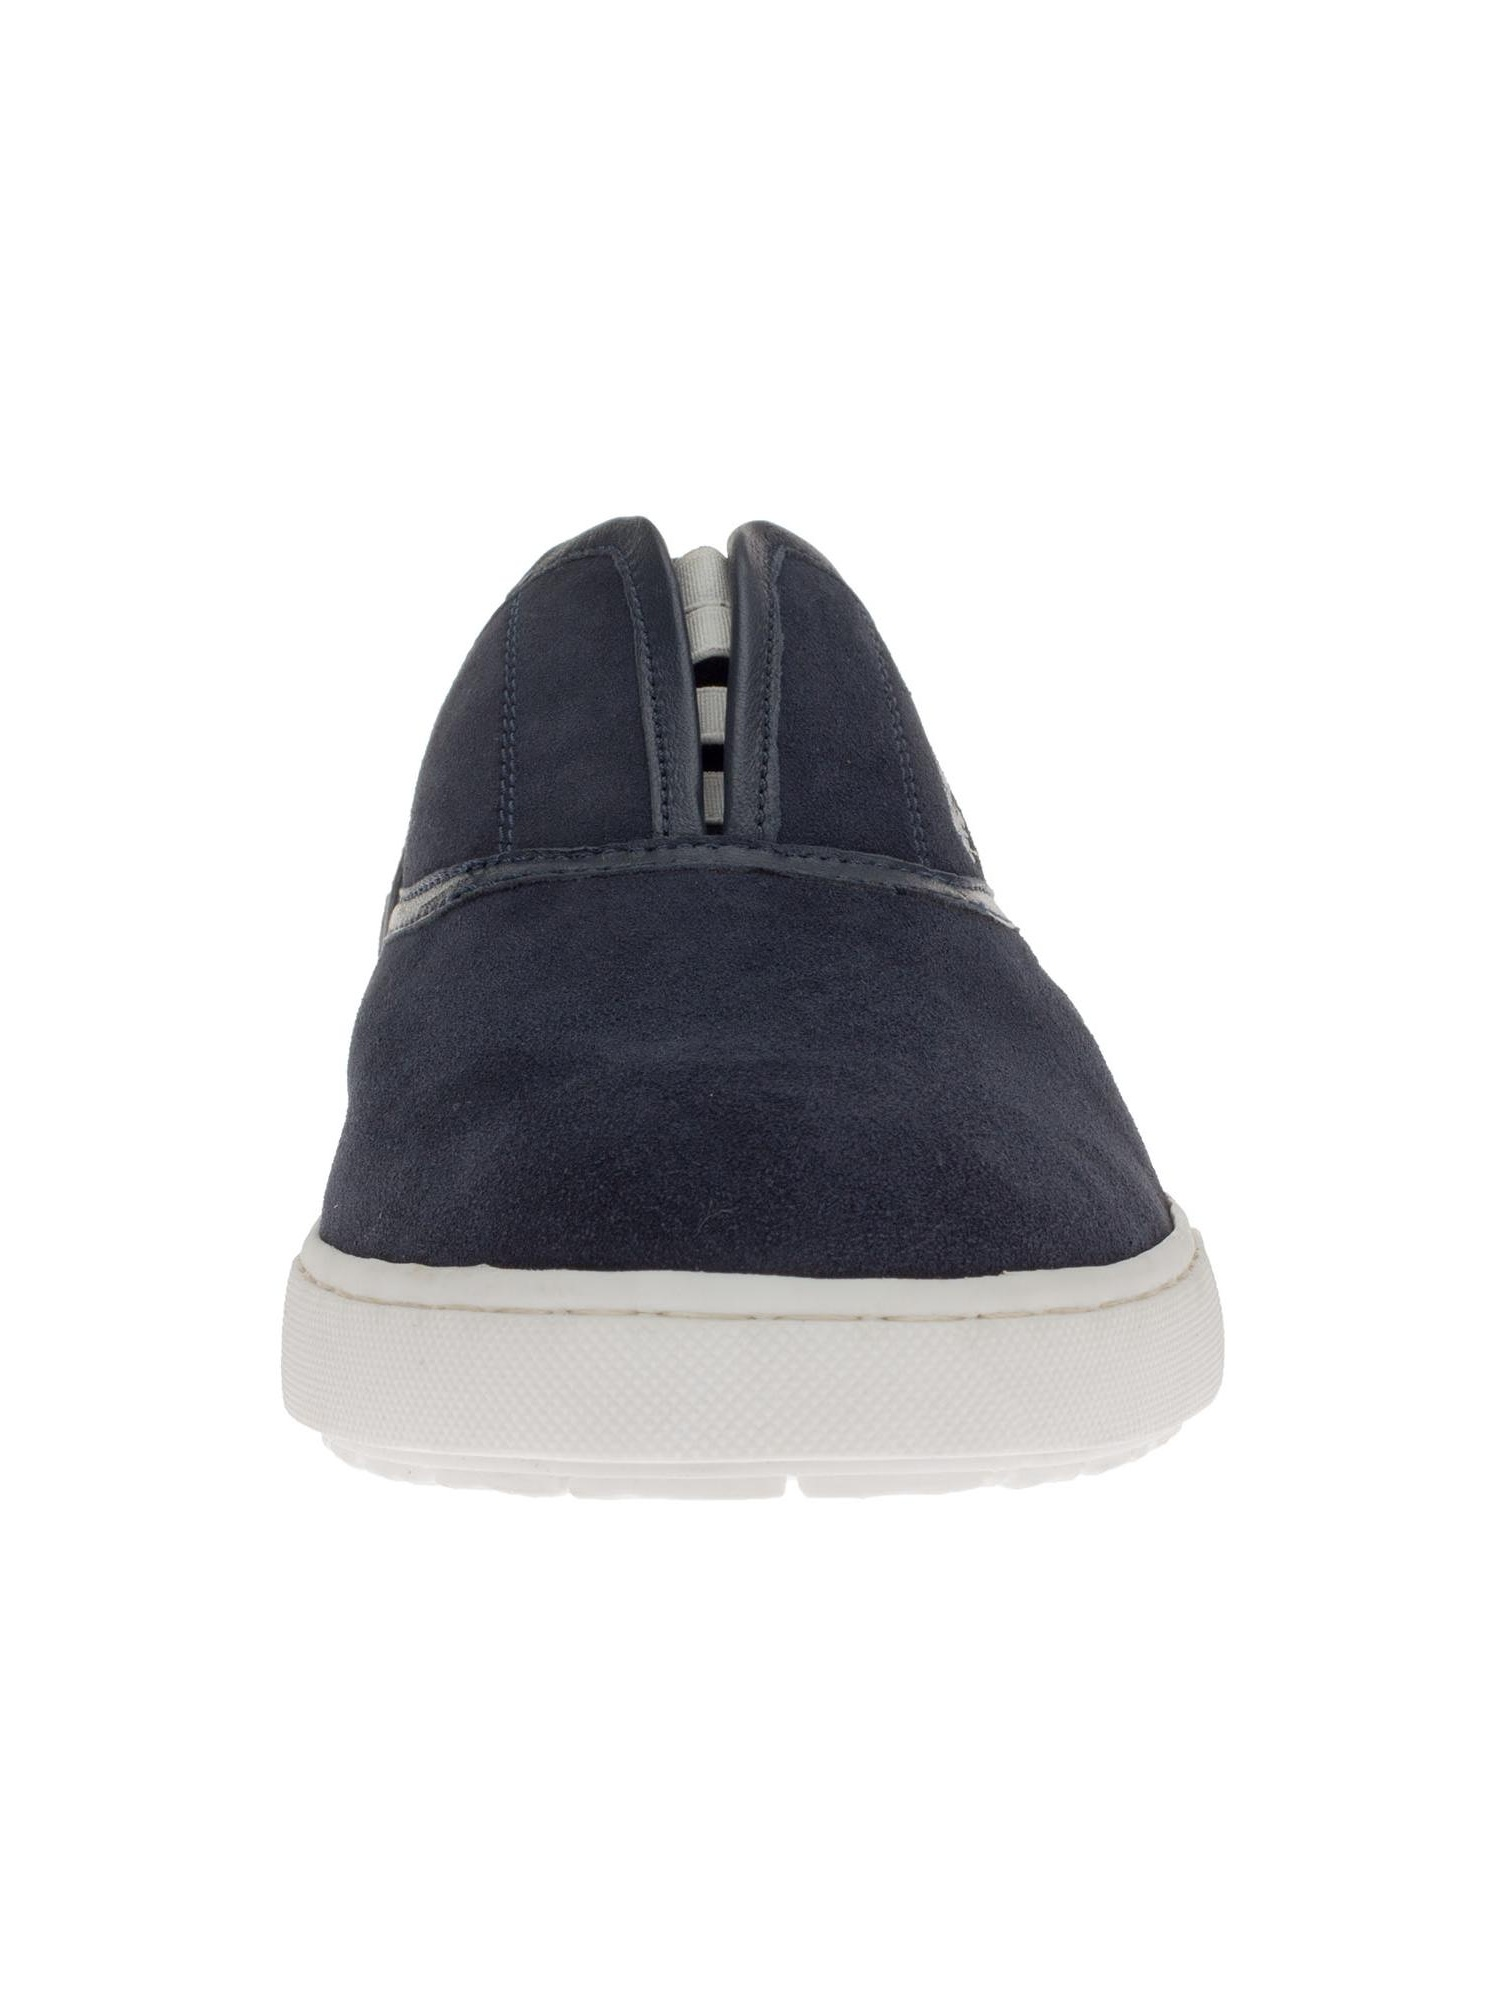 Gino Valentino Men's Alfonso Leather Shoes Fashion Slip-On Sneaker